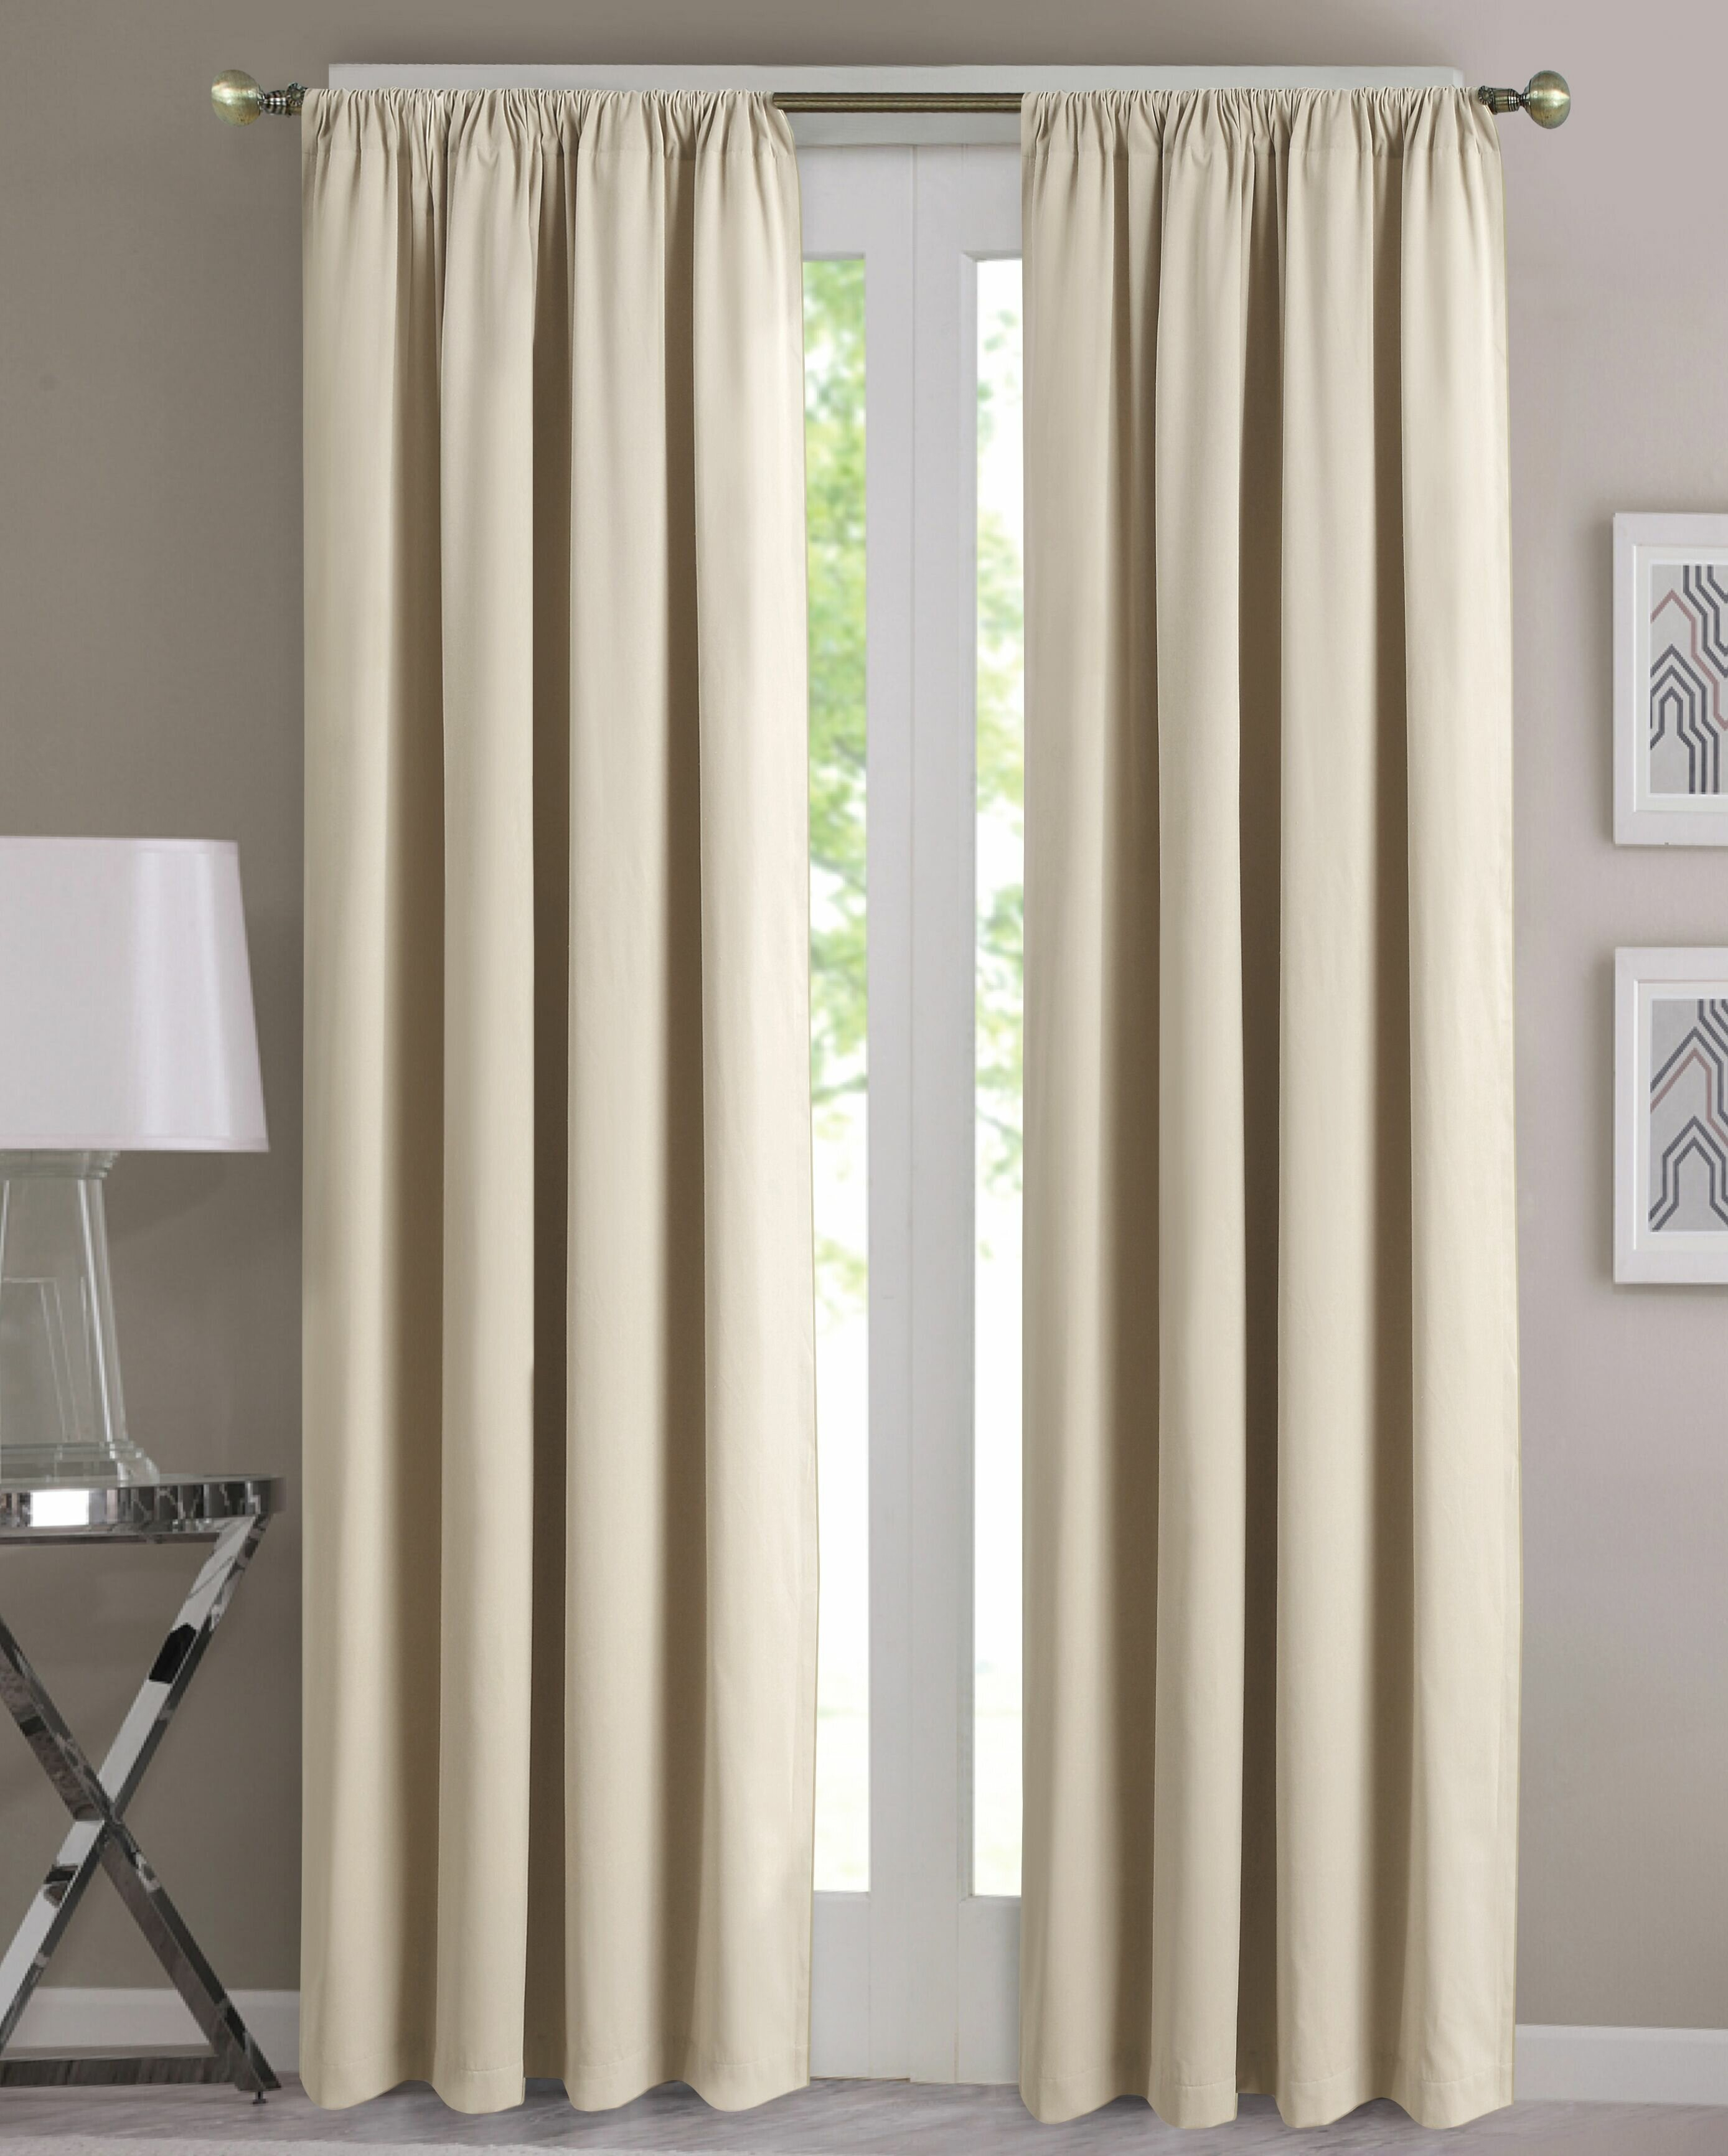 Prine Solid Room Darkening Thermal Single Curtain Panel With Regard To Single Curtain Panels (View 3 of 31)